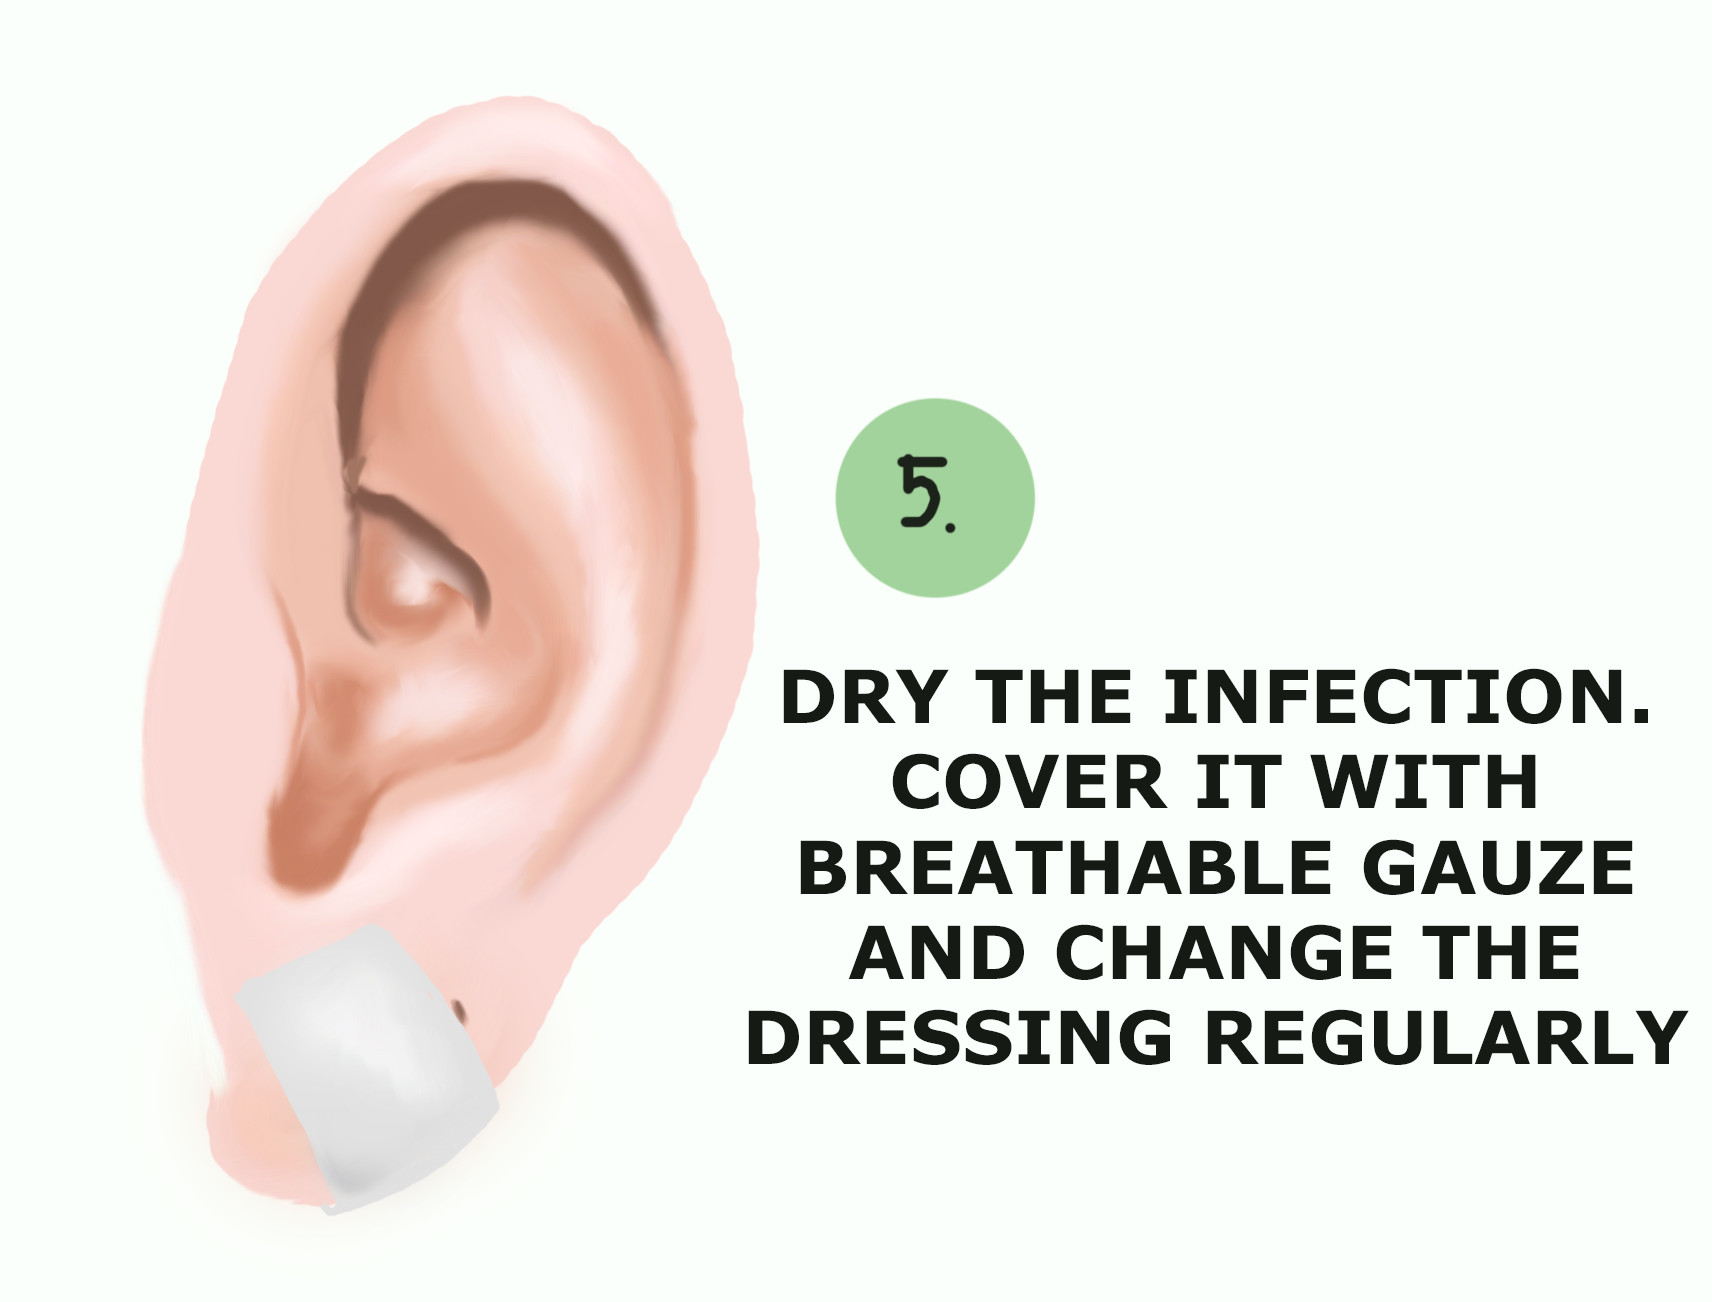 How To Drain Infected Ear Piercing Wound Care Society